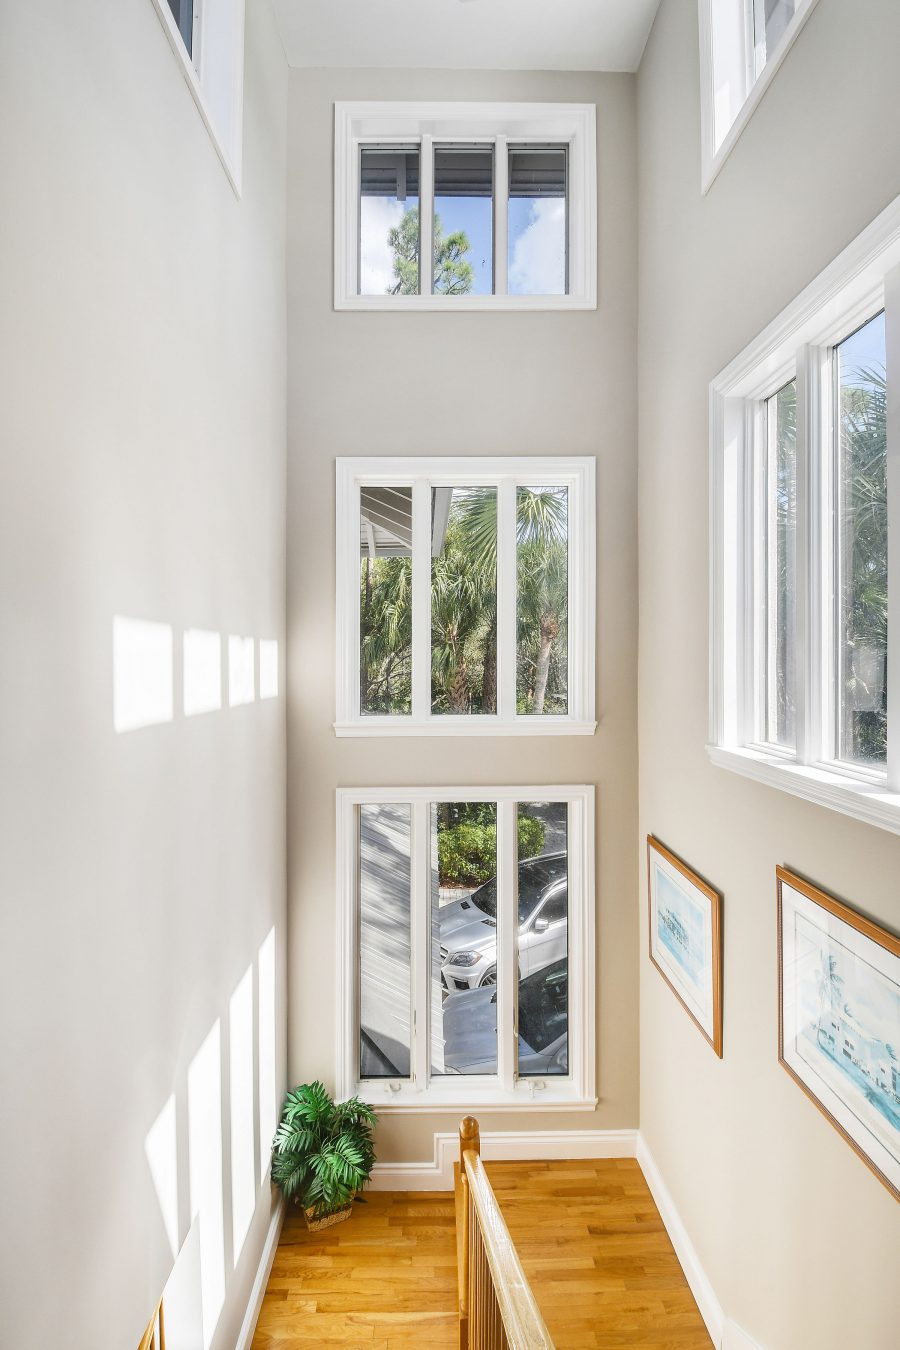 CertaPro Painters in Palm Beach Gardens, FL your Interior painting experts